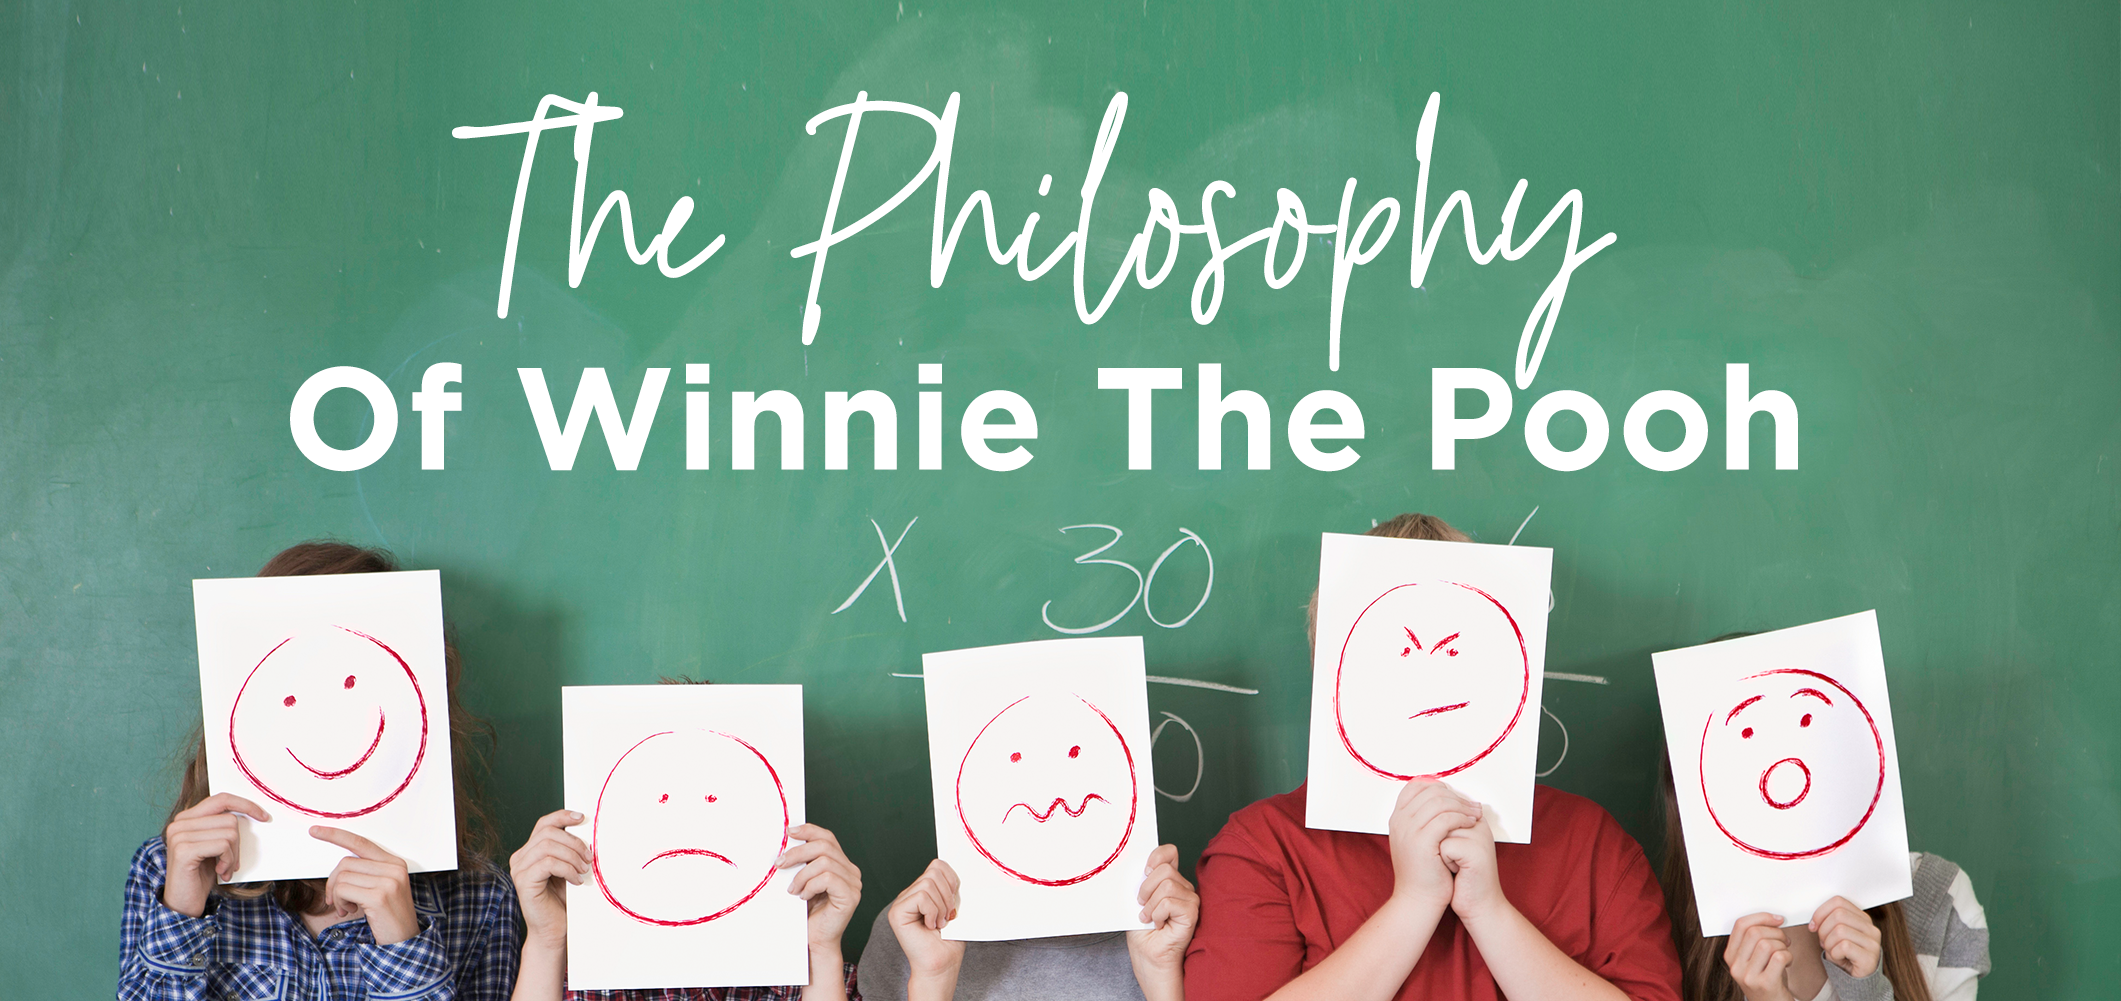 The Philosophy of Winnie the Pooh